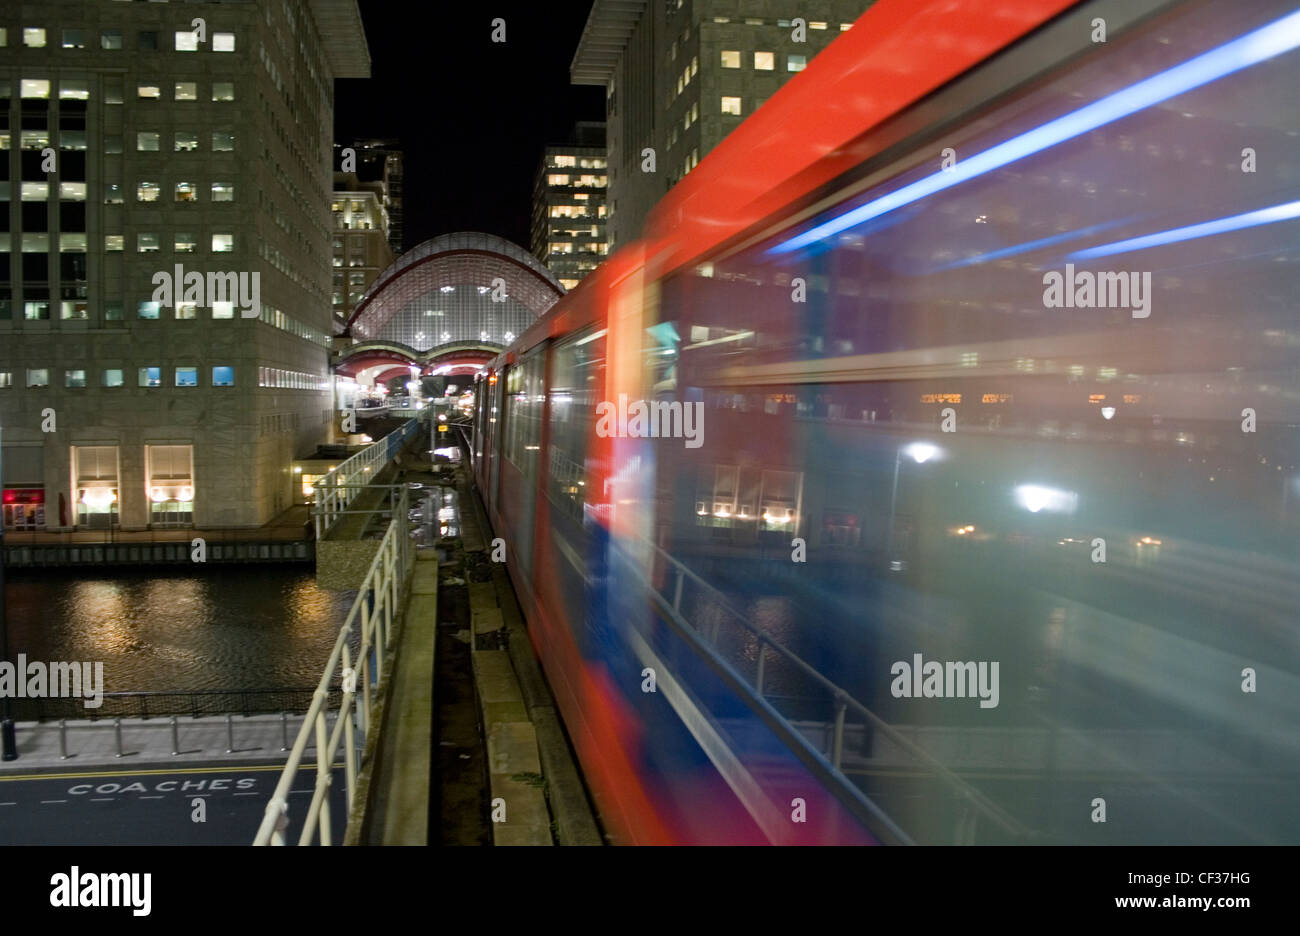 Docklands Light Railway train approaching towards Canary Wharf station at night. - Stock Image